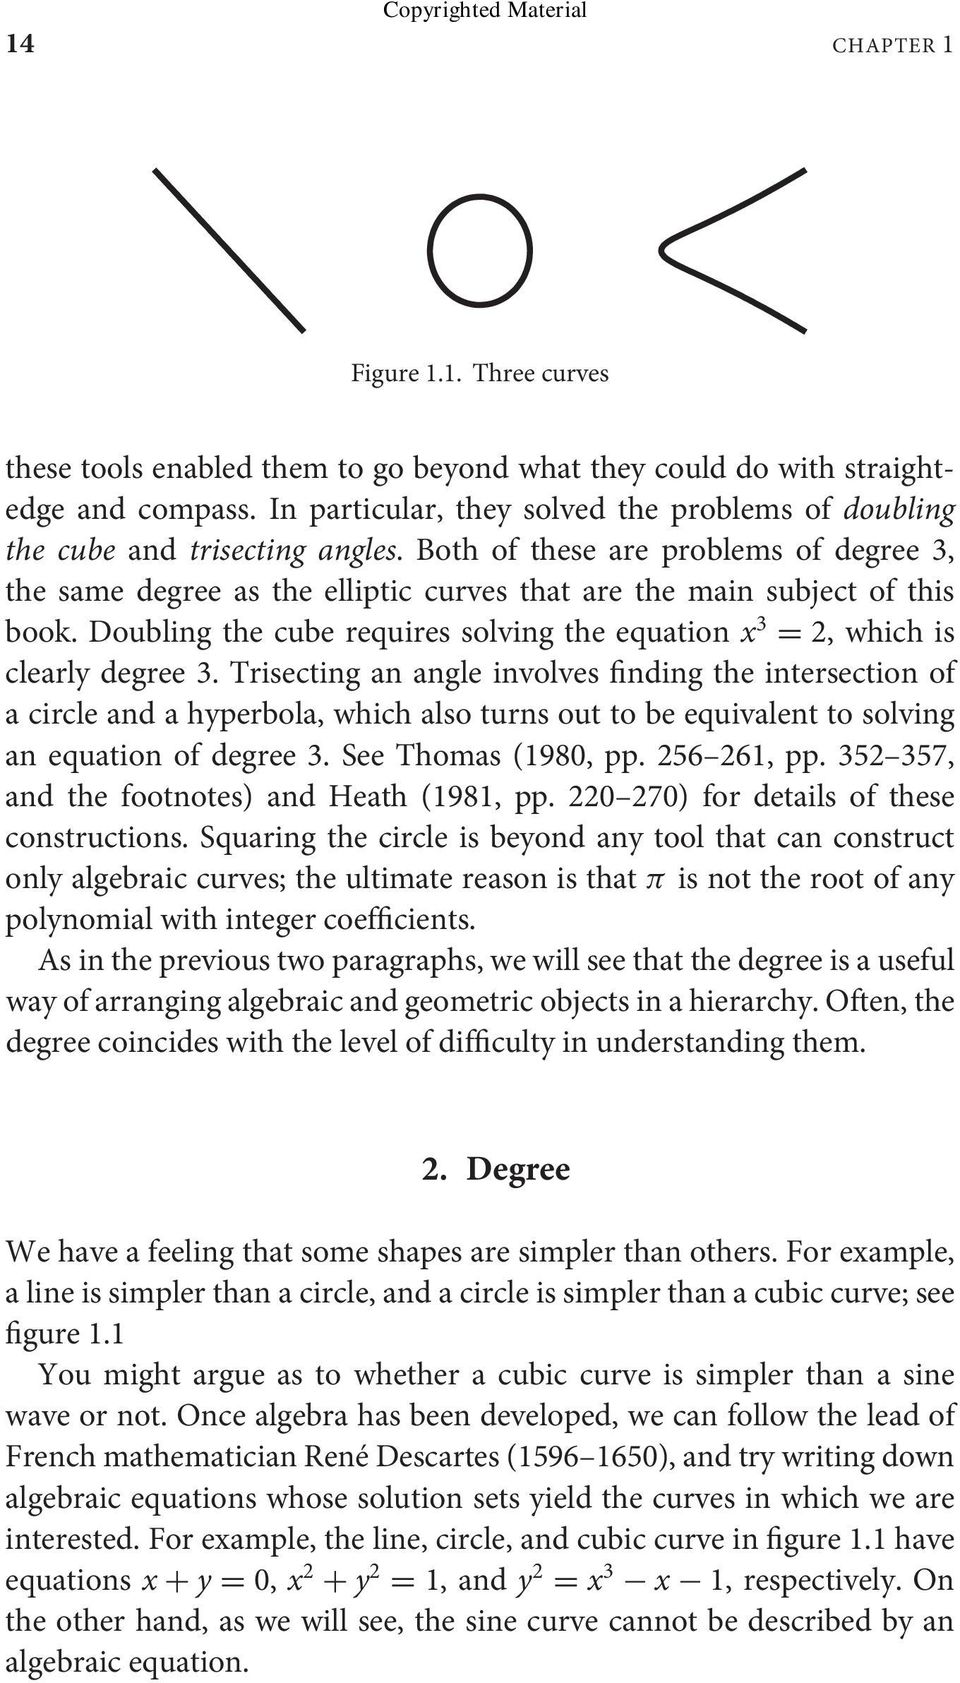 Both of these are problems of degree 3, the same degree as the elliptic curves that are the main subject of this book.